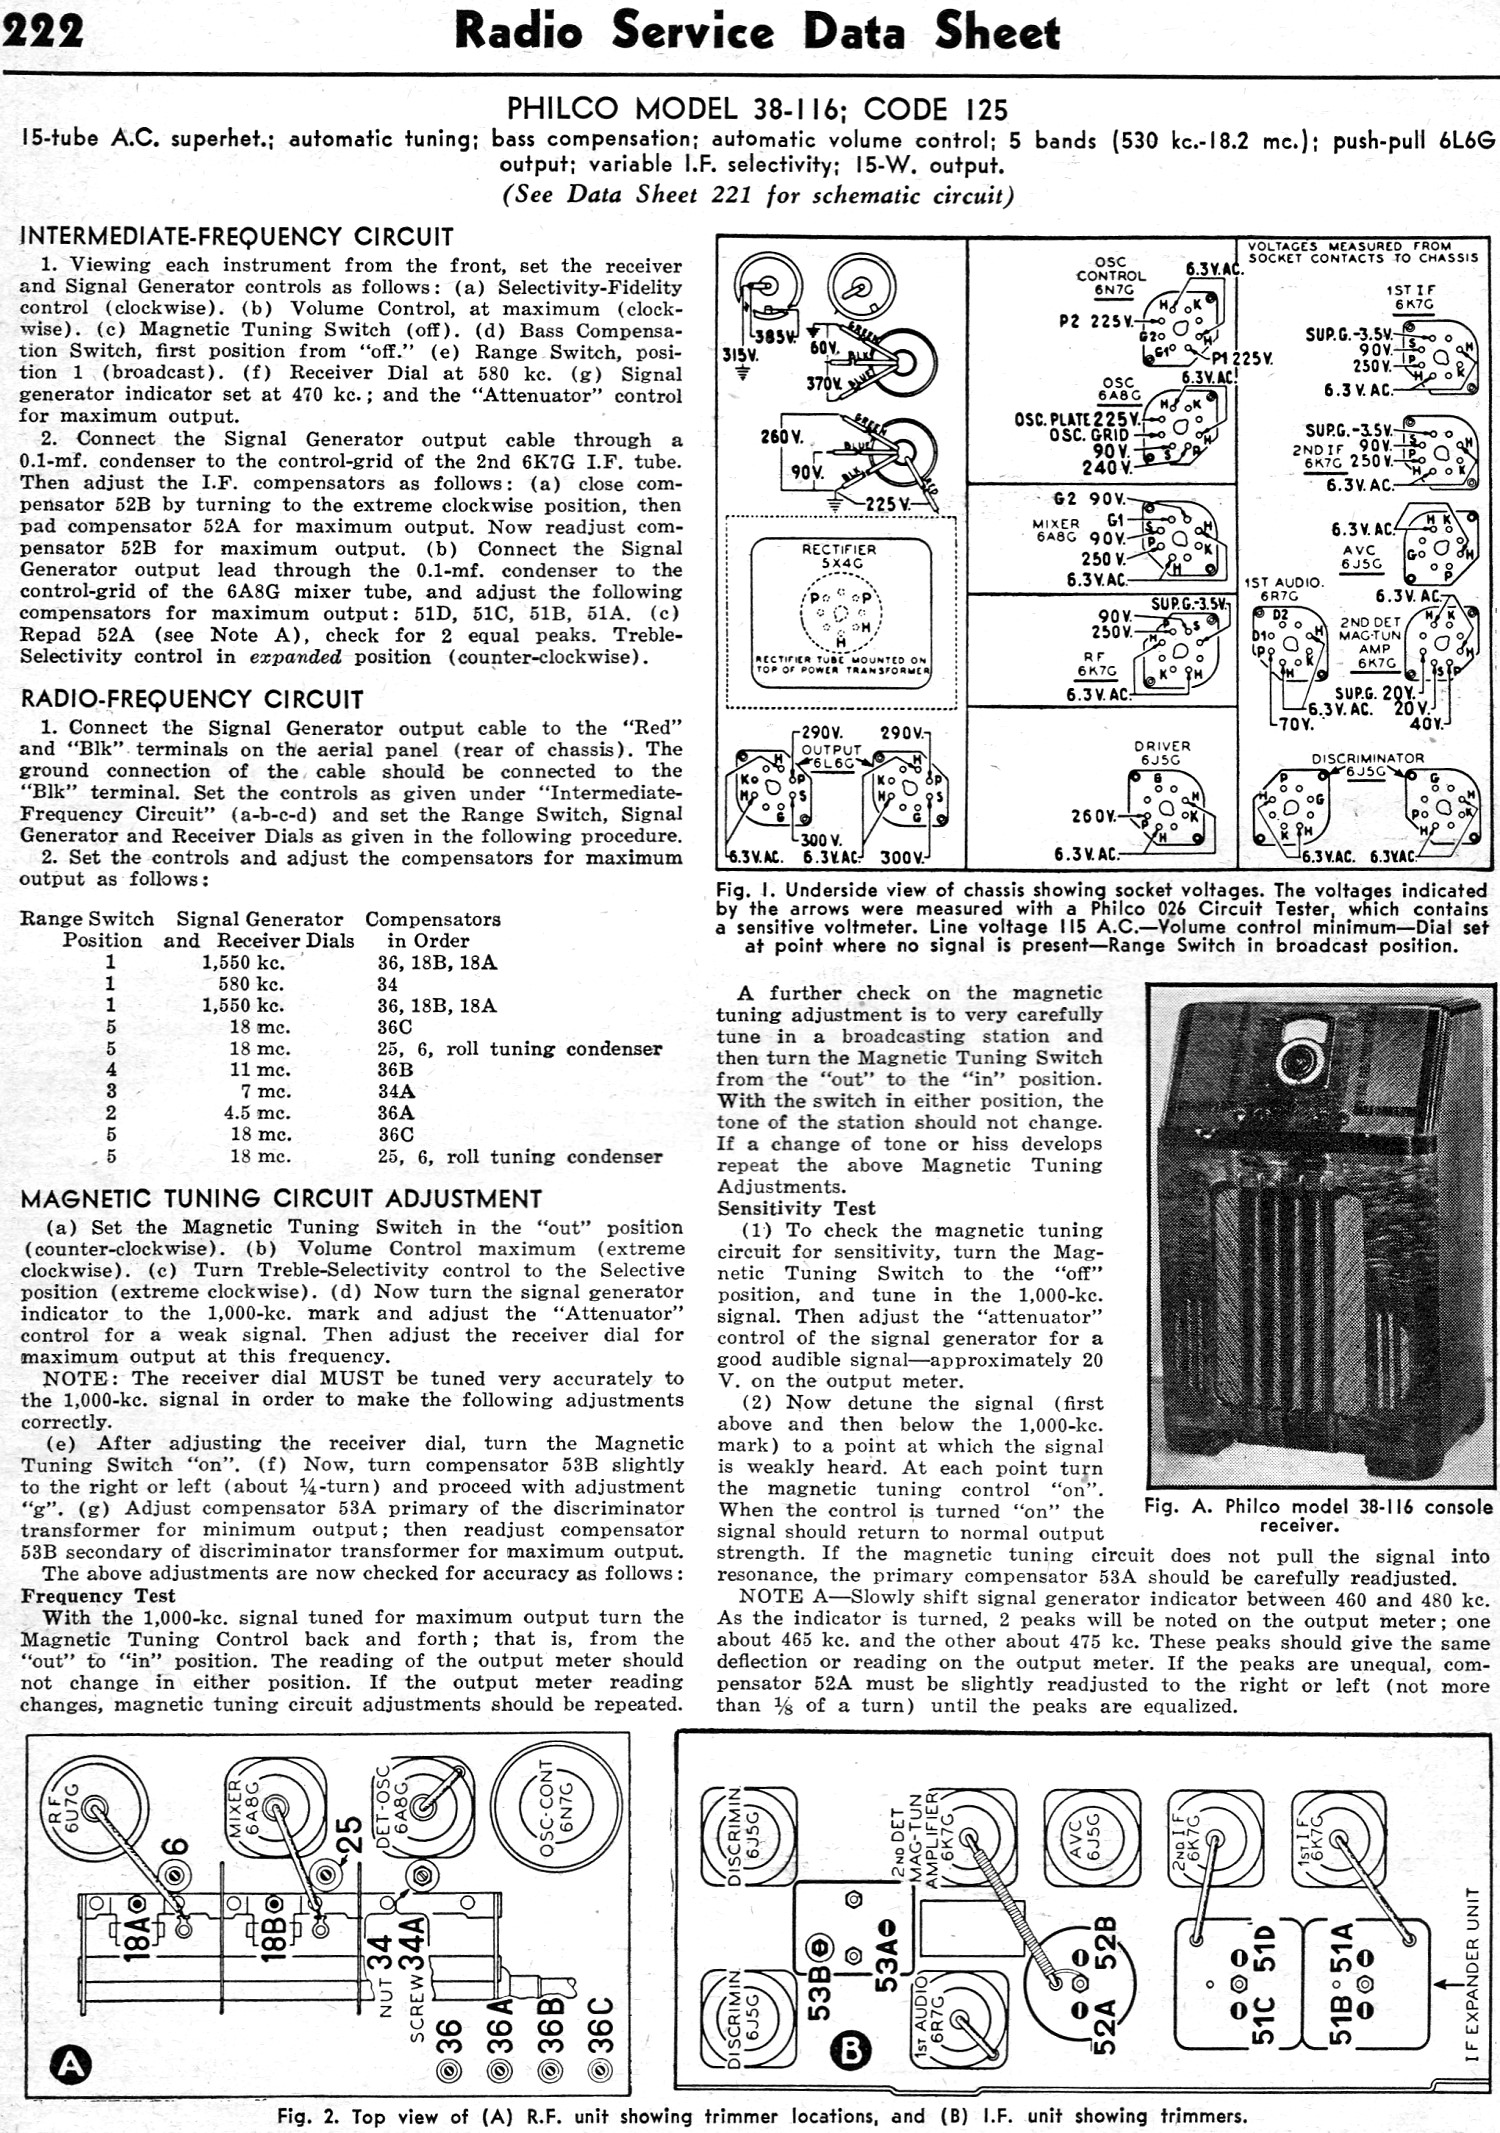 Philco Model 38116 Code 125 February 1938 Radiocraft Rf Cafe. Philco Model 38116 Code 125 February 1938 Radiocraft 222. Wiring. Zenith Tube Radio Schematics 1938 At Scoala.co